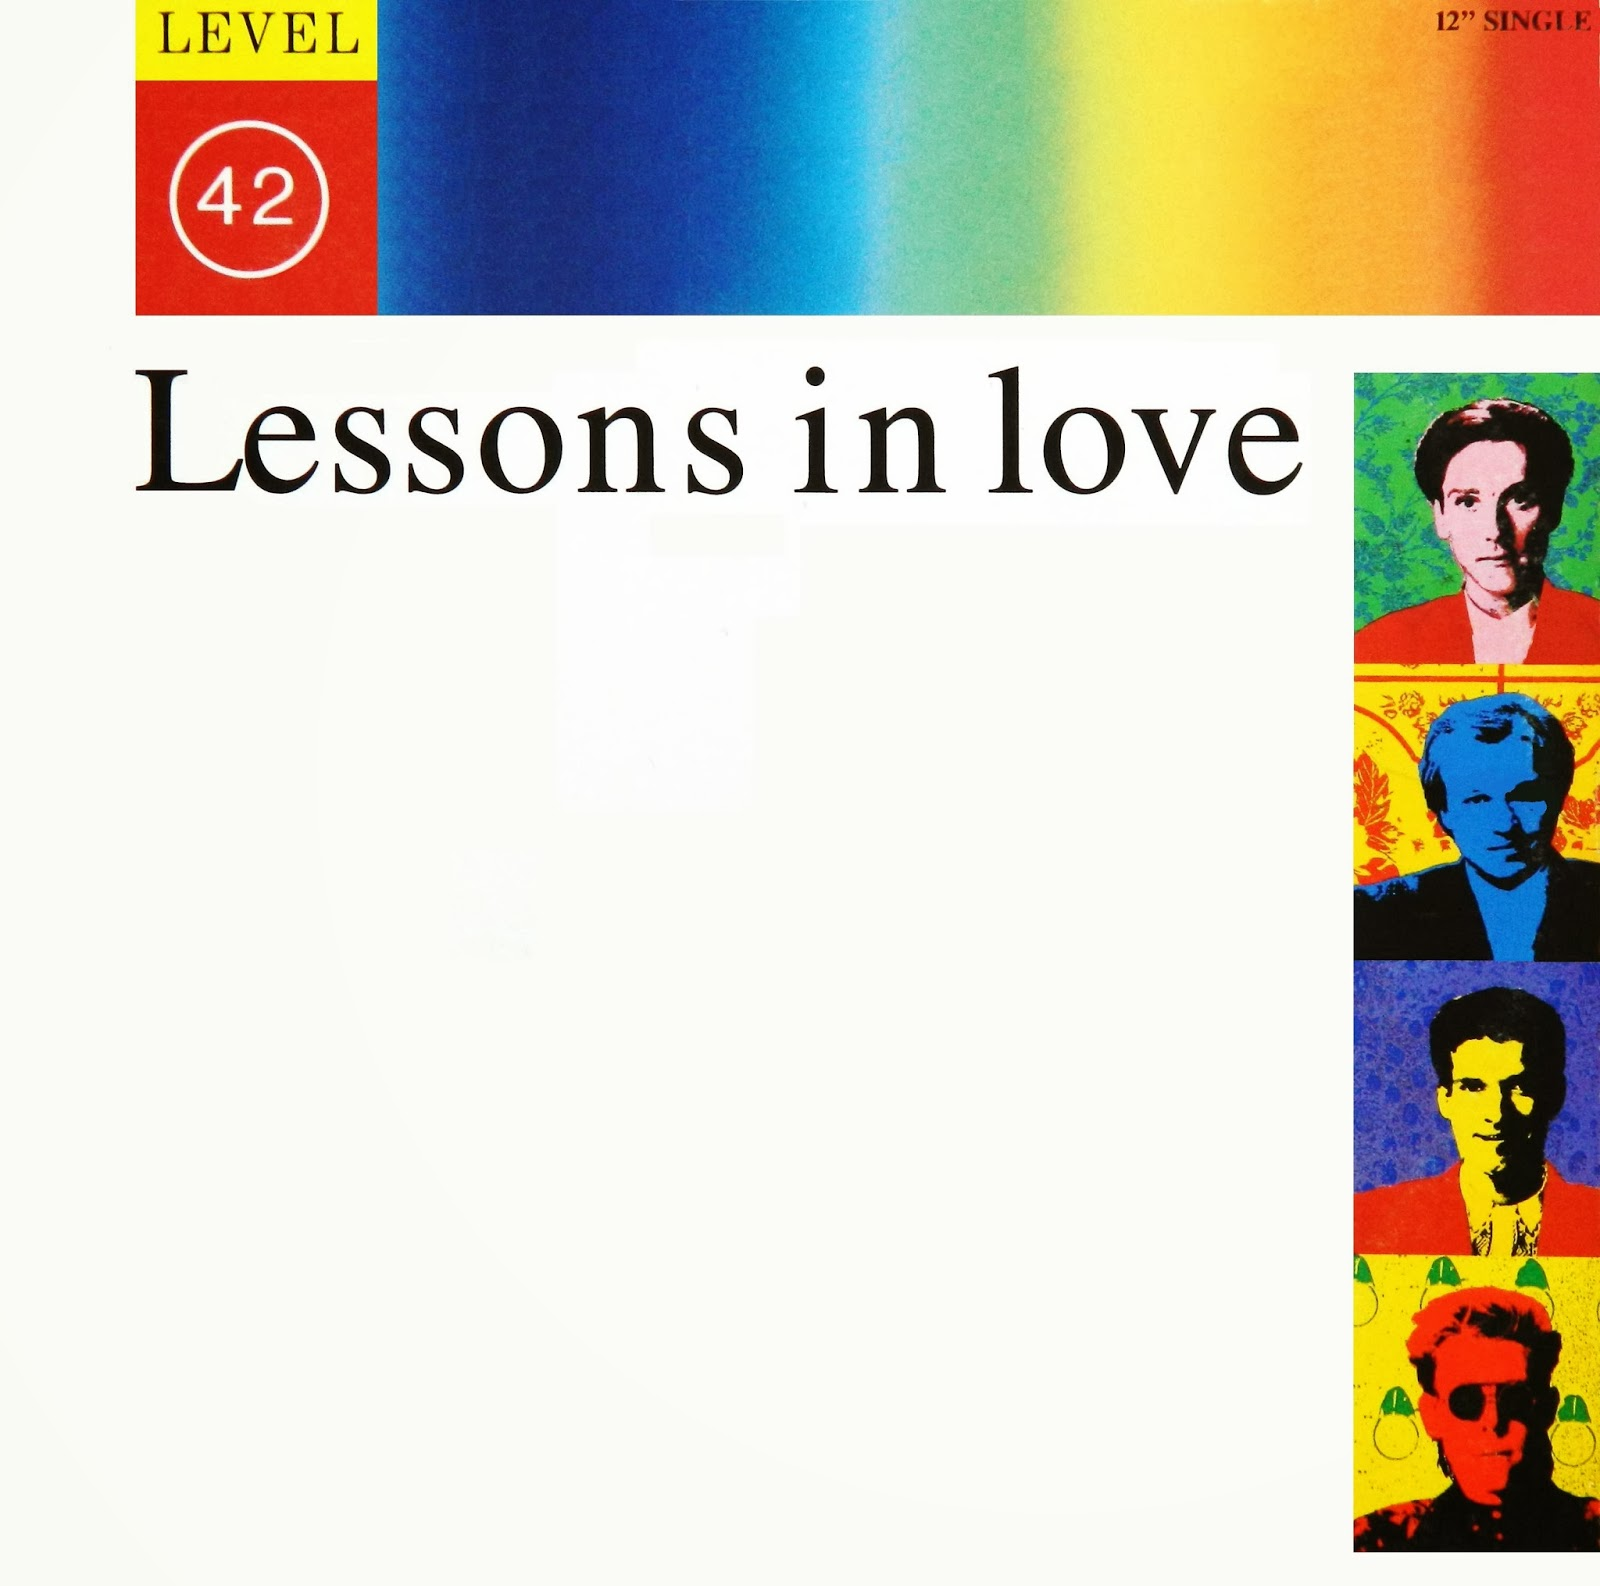 Level 42 - Lessons In Love Chords - AZ Chords